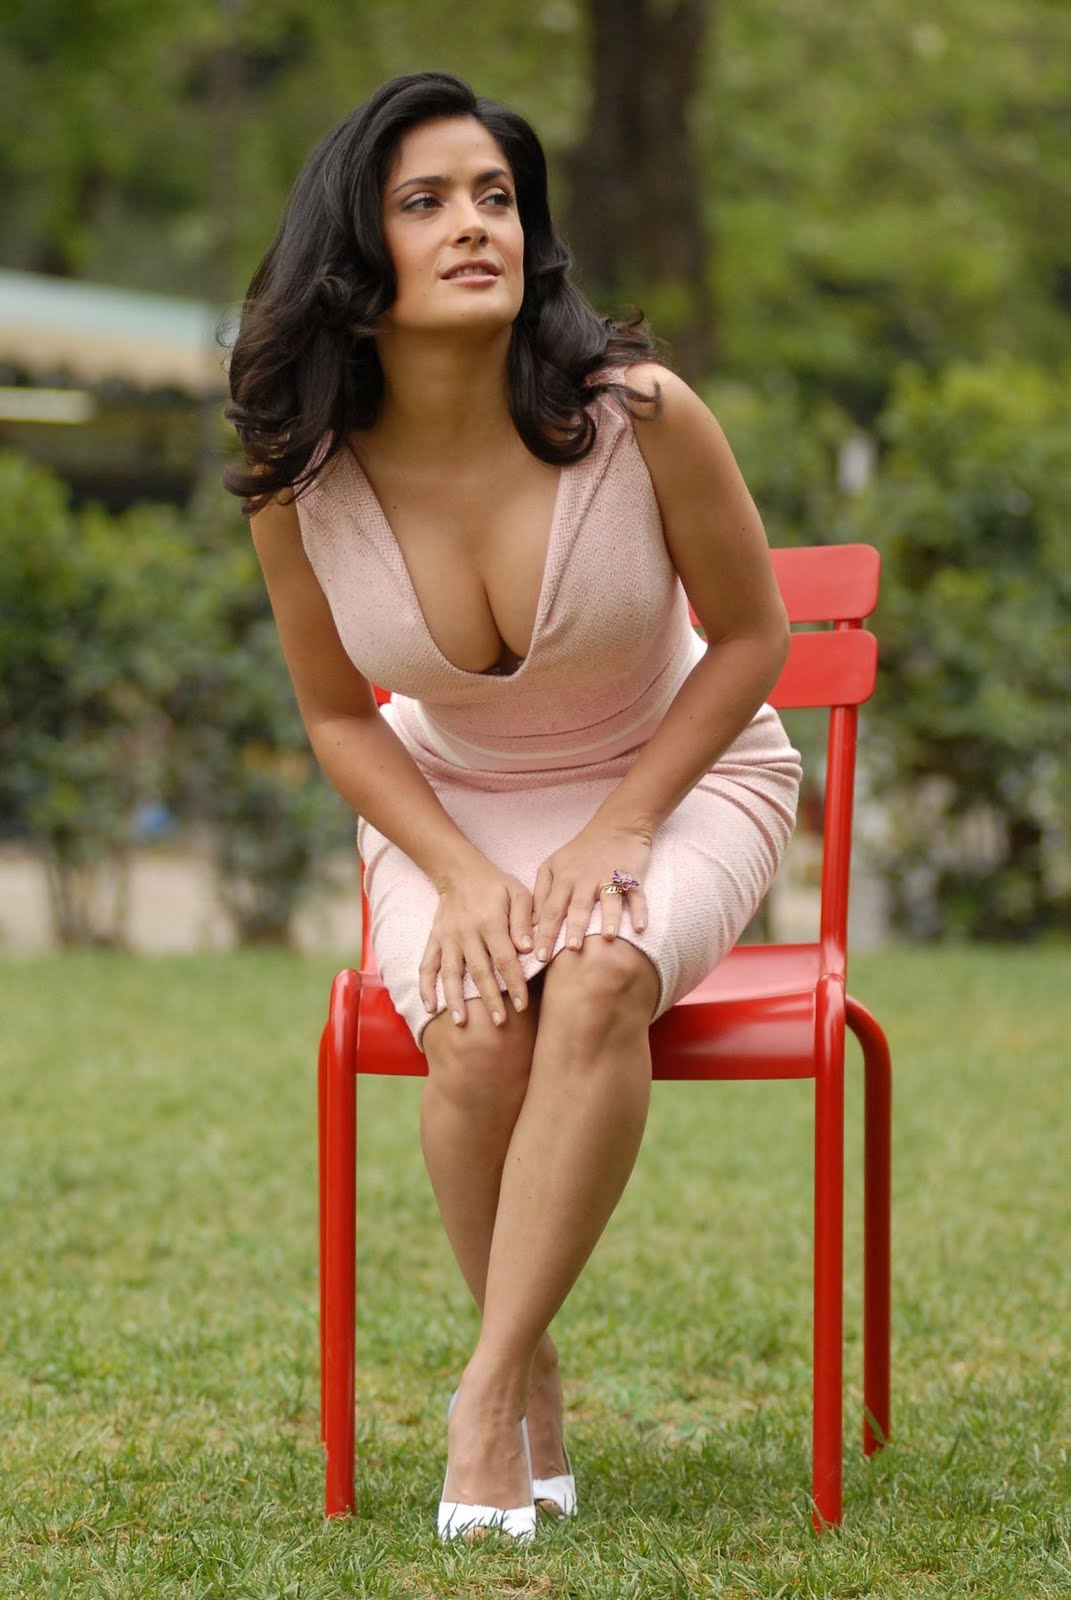 salma hayek does not even have thought that the housewives to enjoy